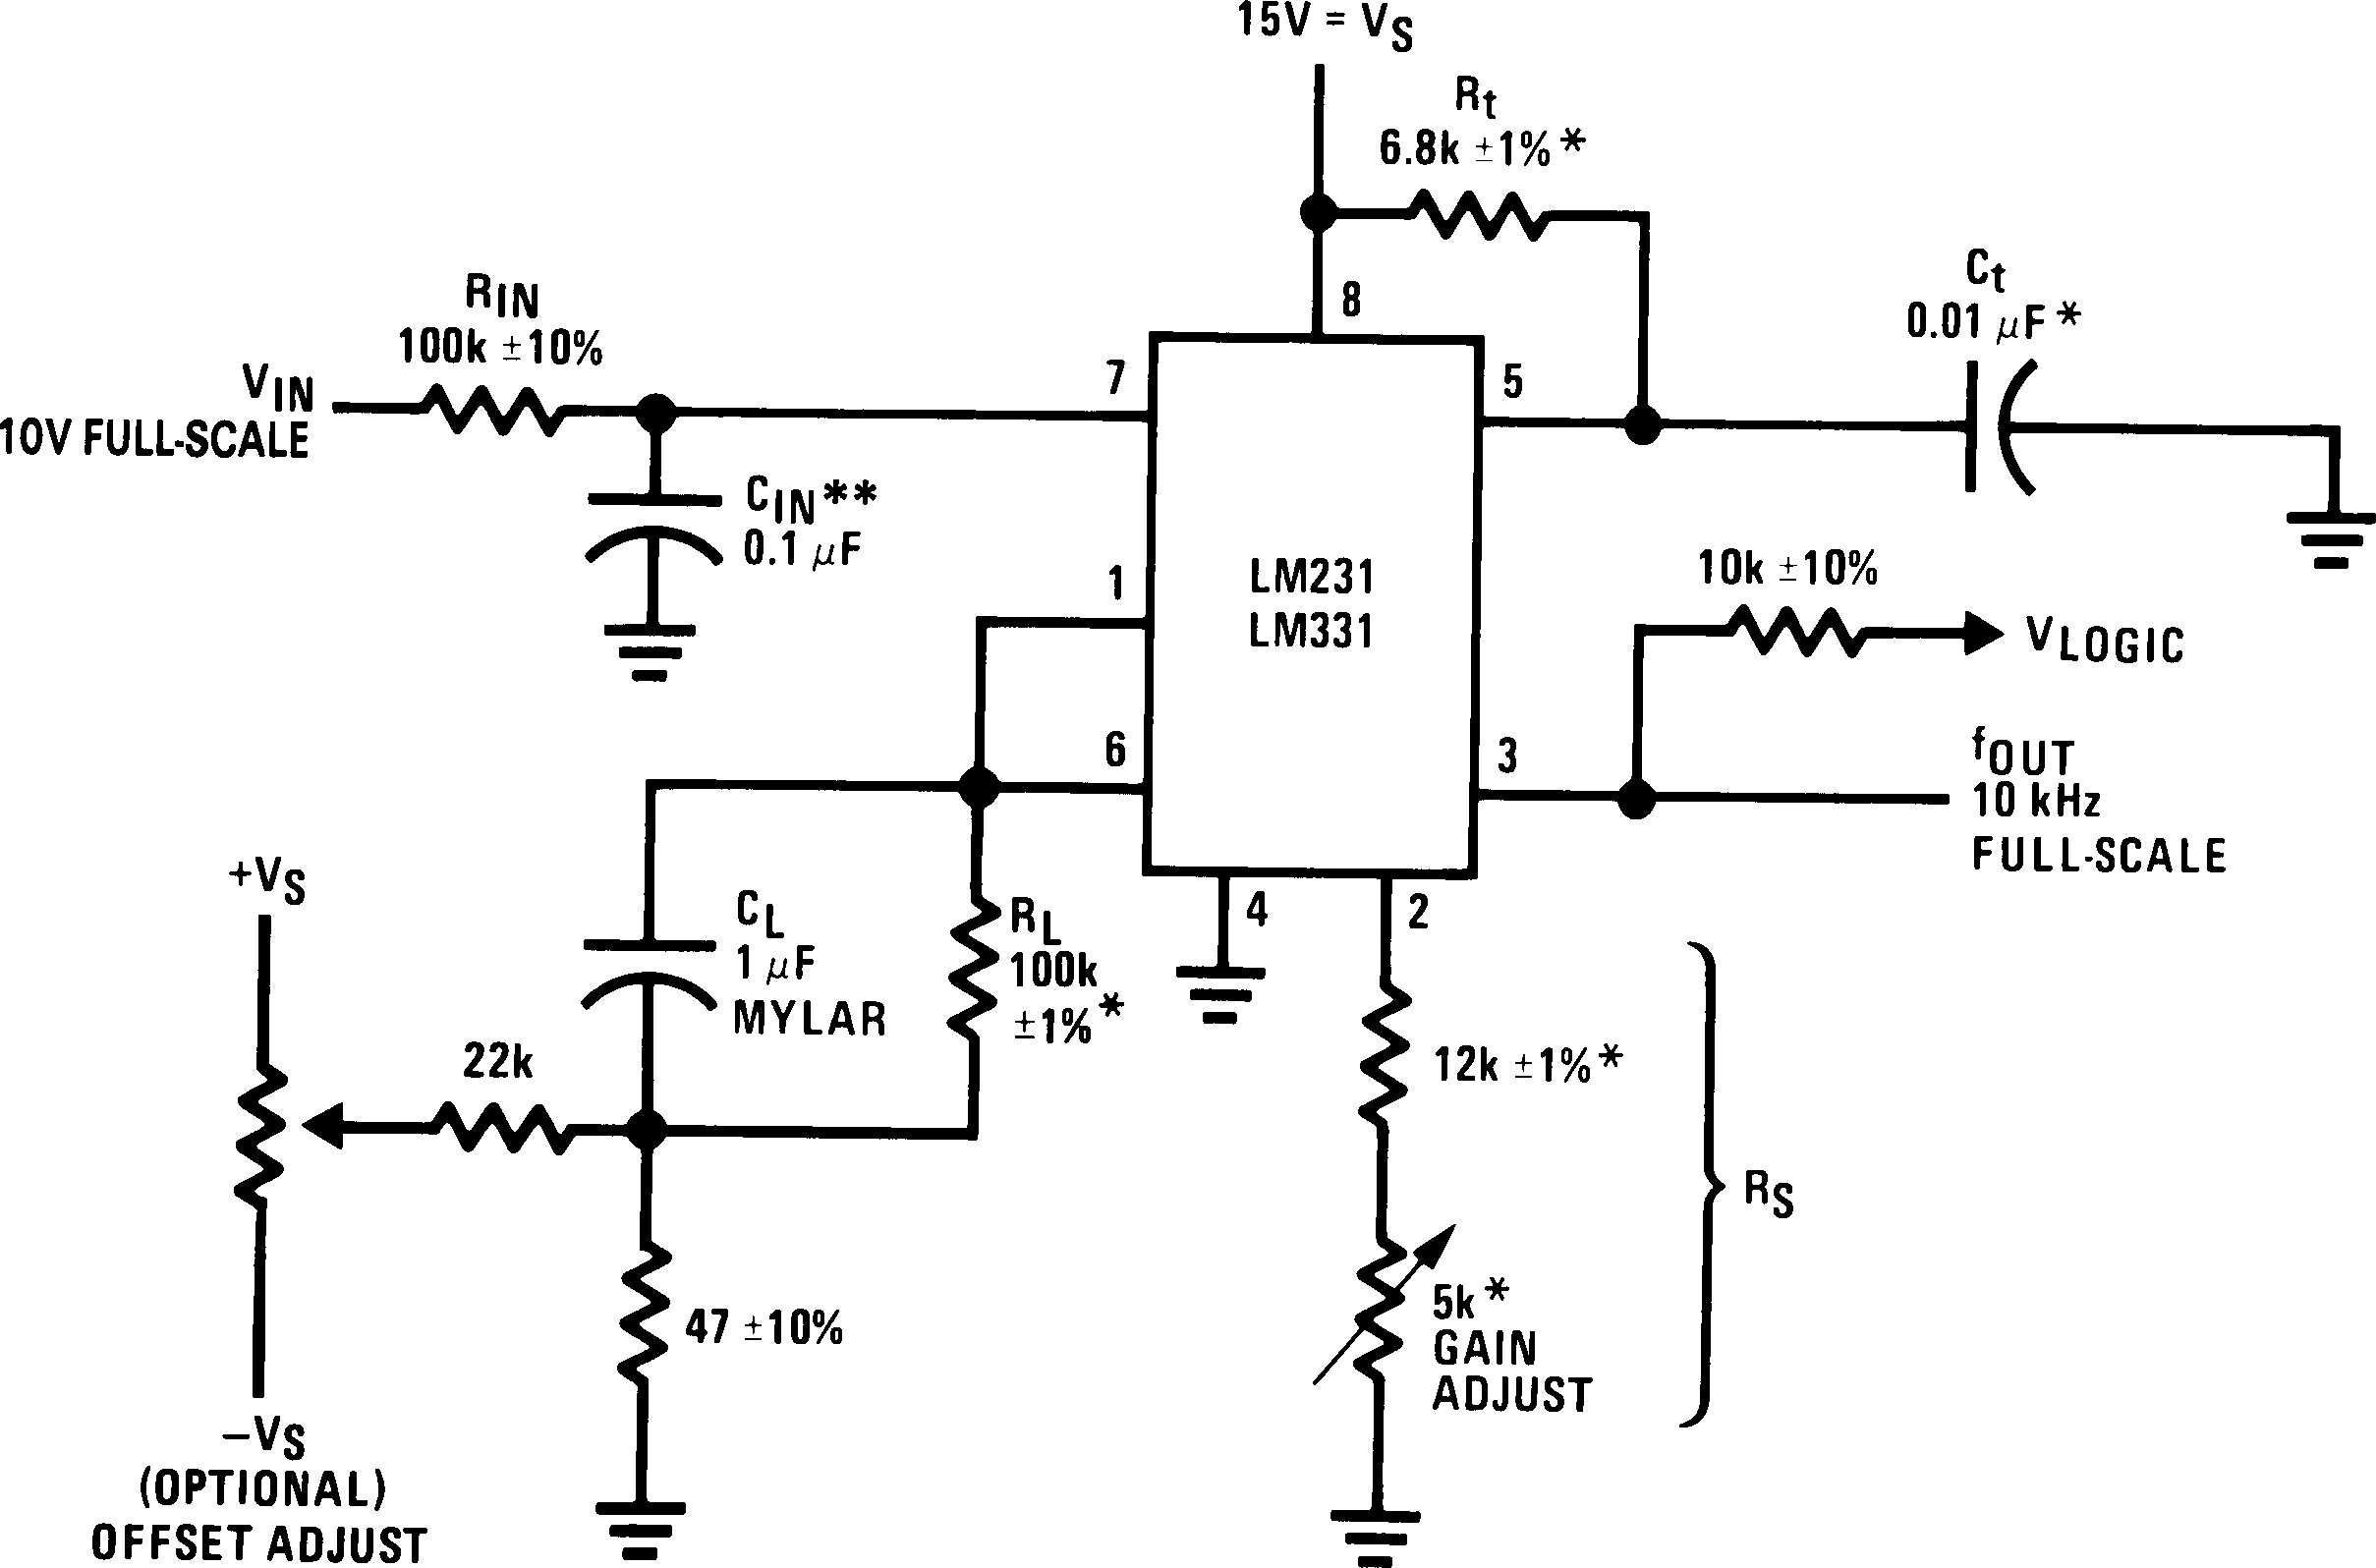 Lm331 555 Ic Negative Voltage Power Supply Circuit Diagram Lm231 00568001